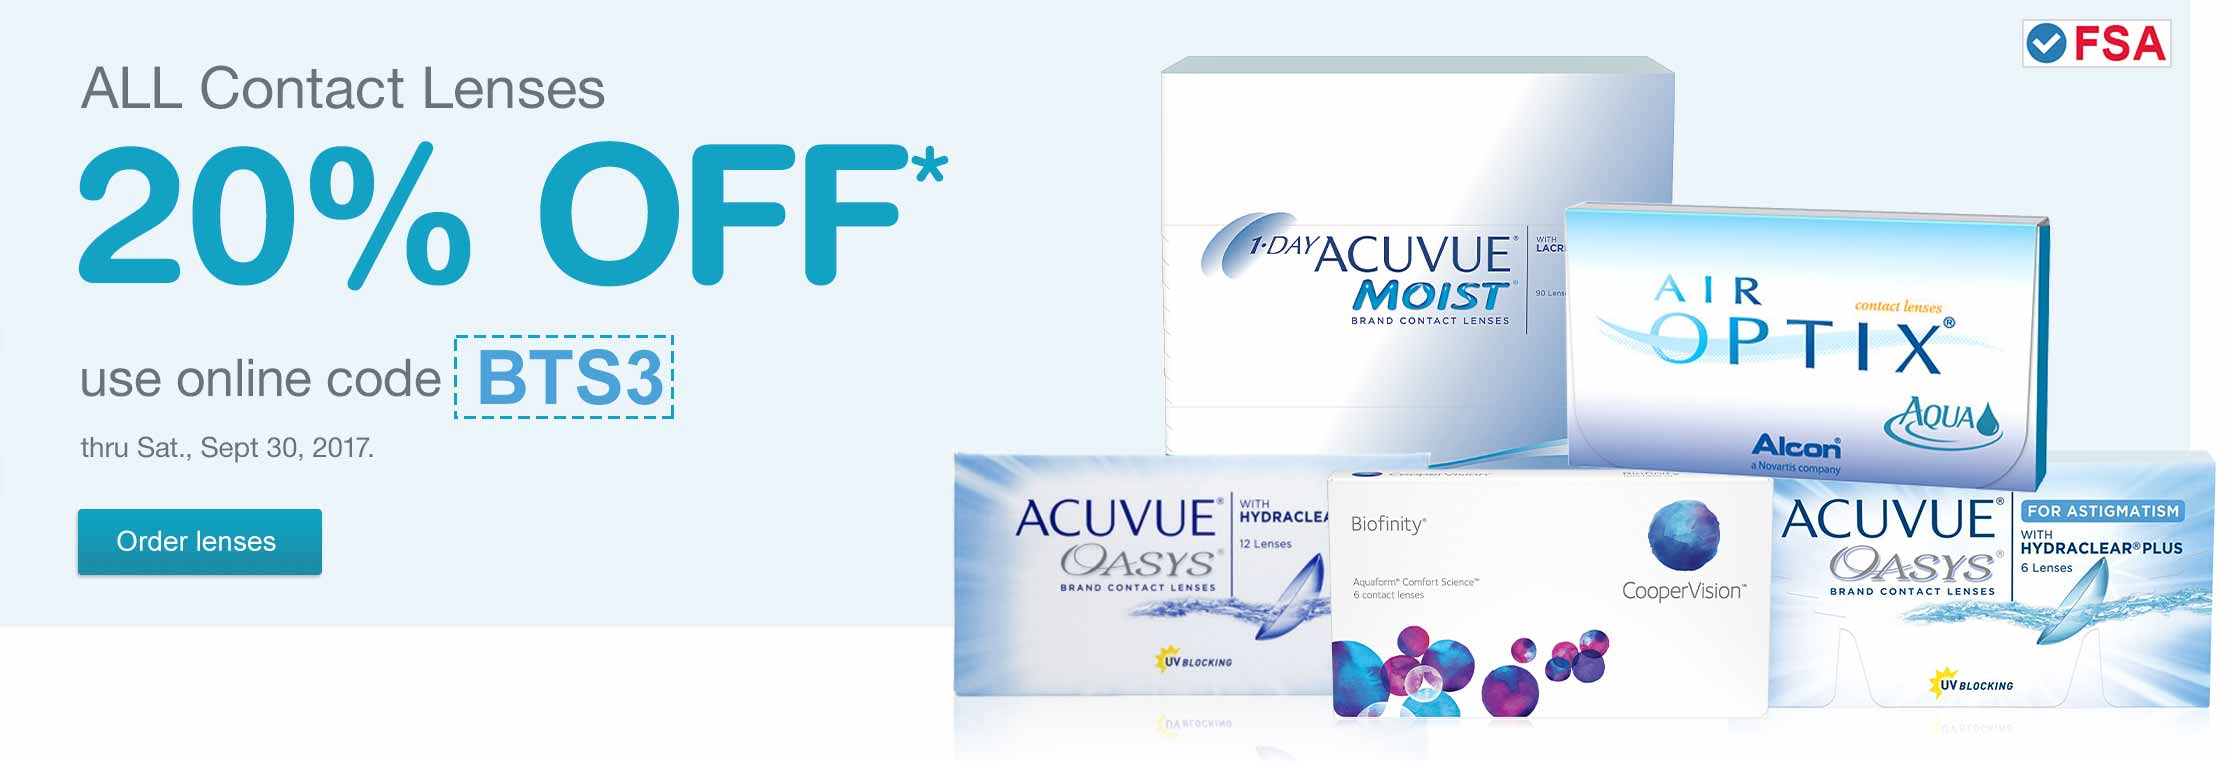 FSA approved. All Contact Lenses 20% OFF.* Use online code BTS3 thru Sat., Sept 30, 2017. Order lenses.